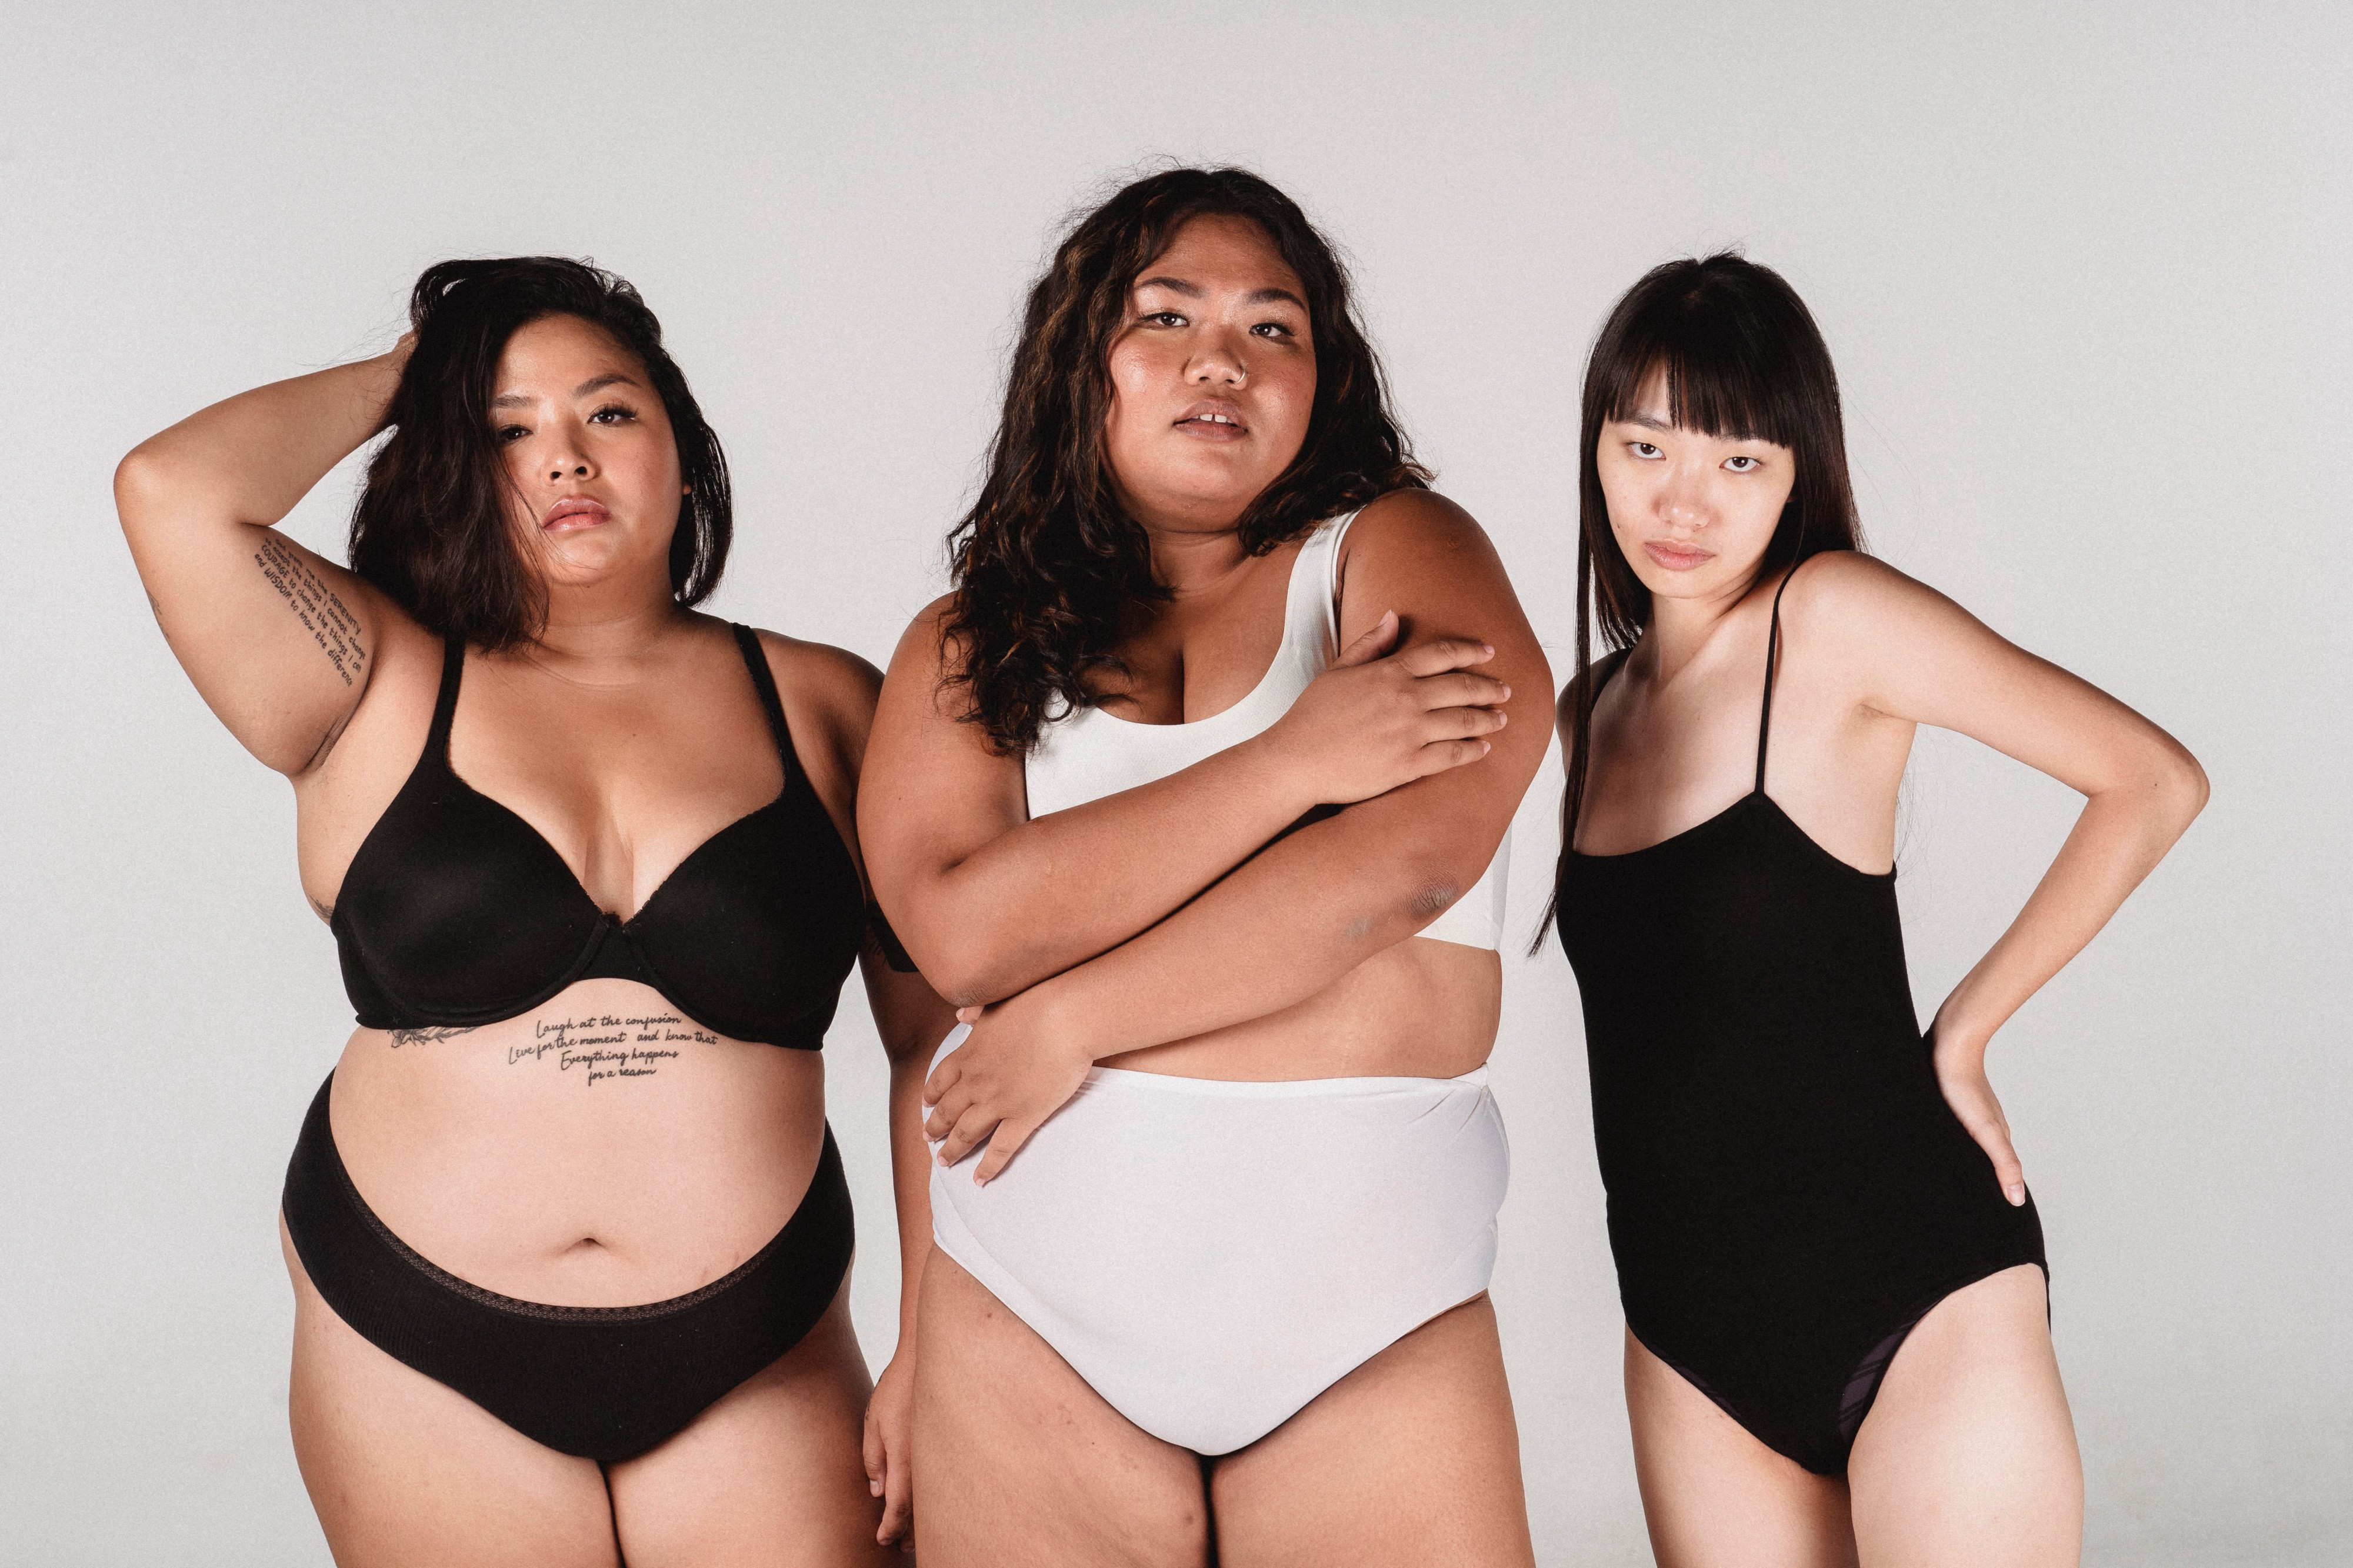 Three women standing together in their underwear. Two women are over-weight, while the last woman is very thin.